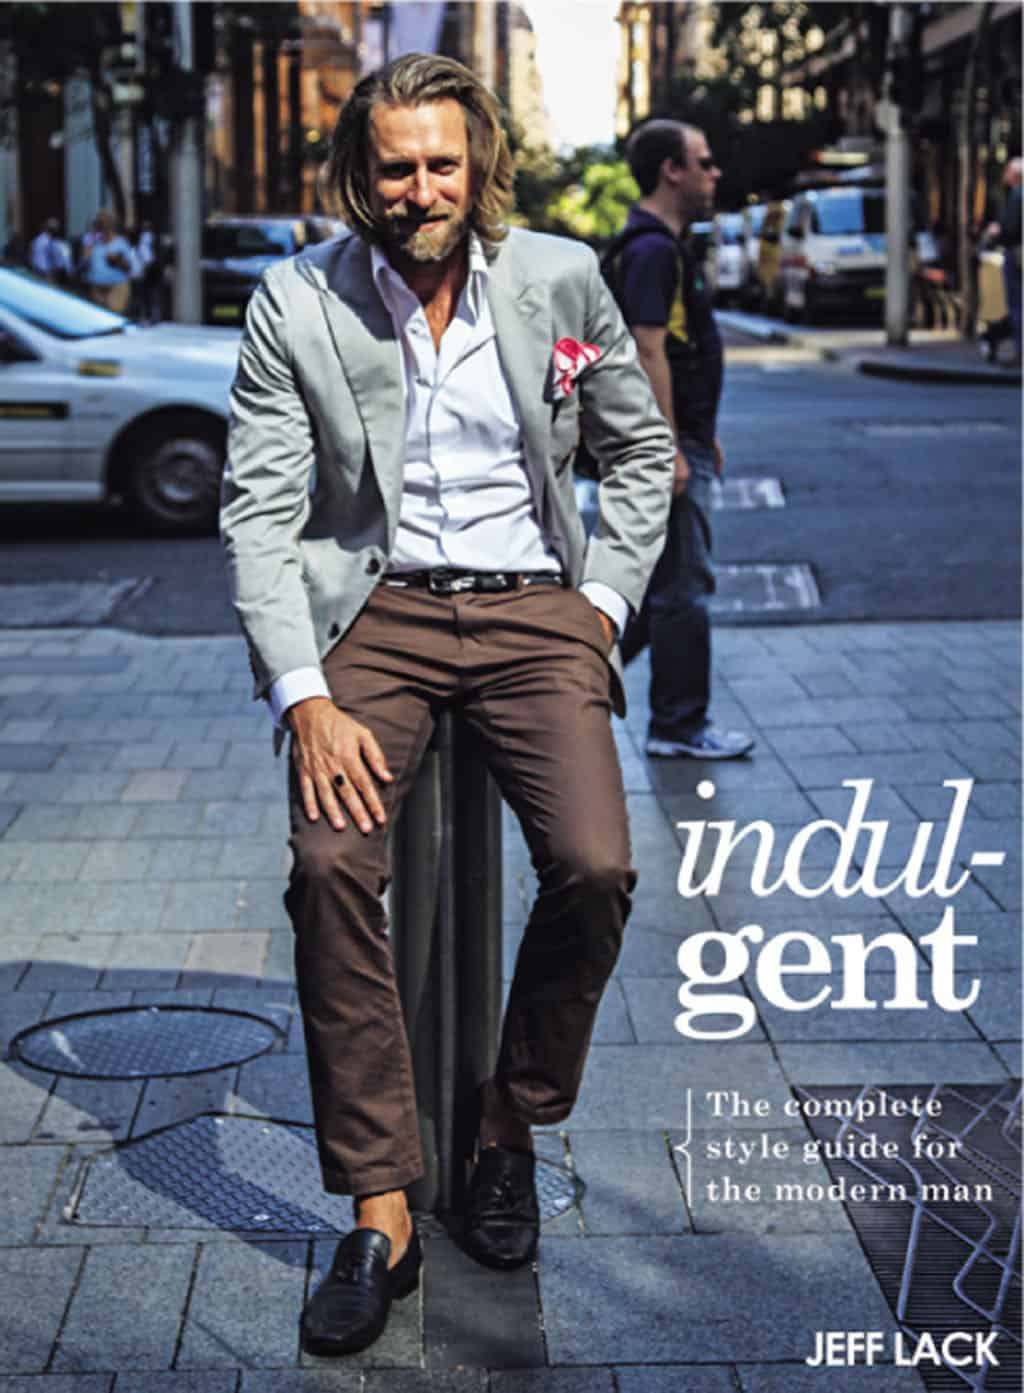 Indul-GENT style guide for the modern man by Jeff Lack.